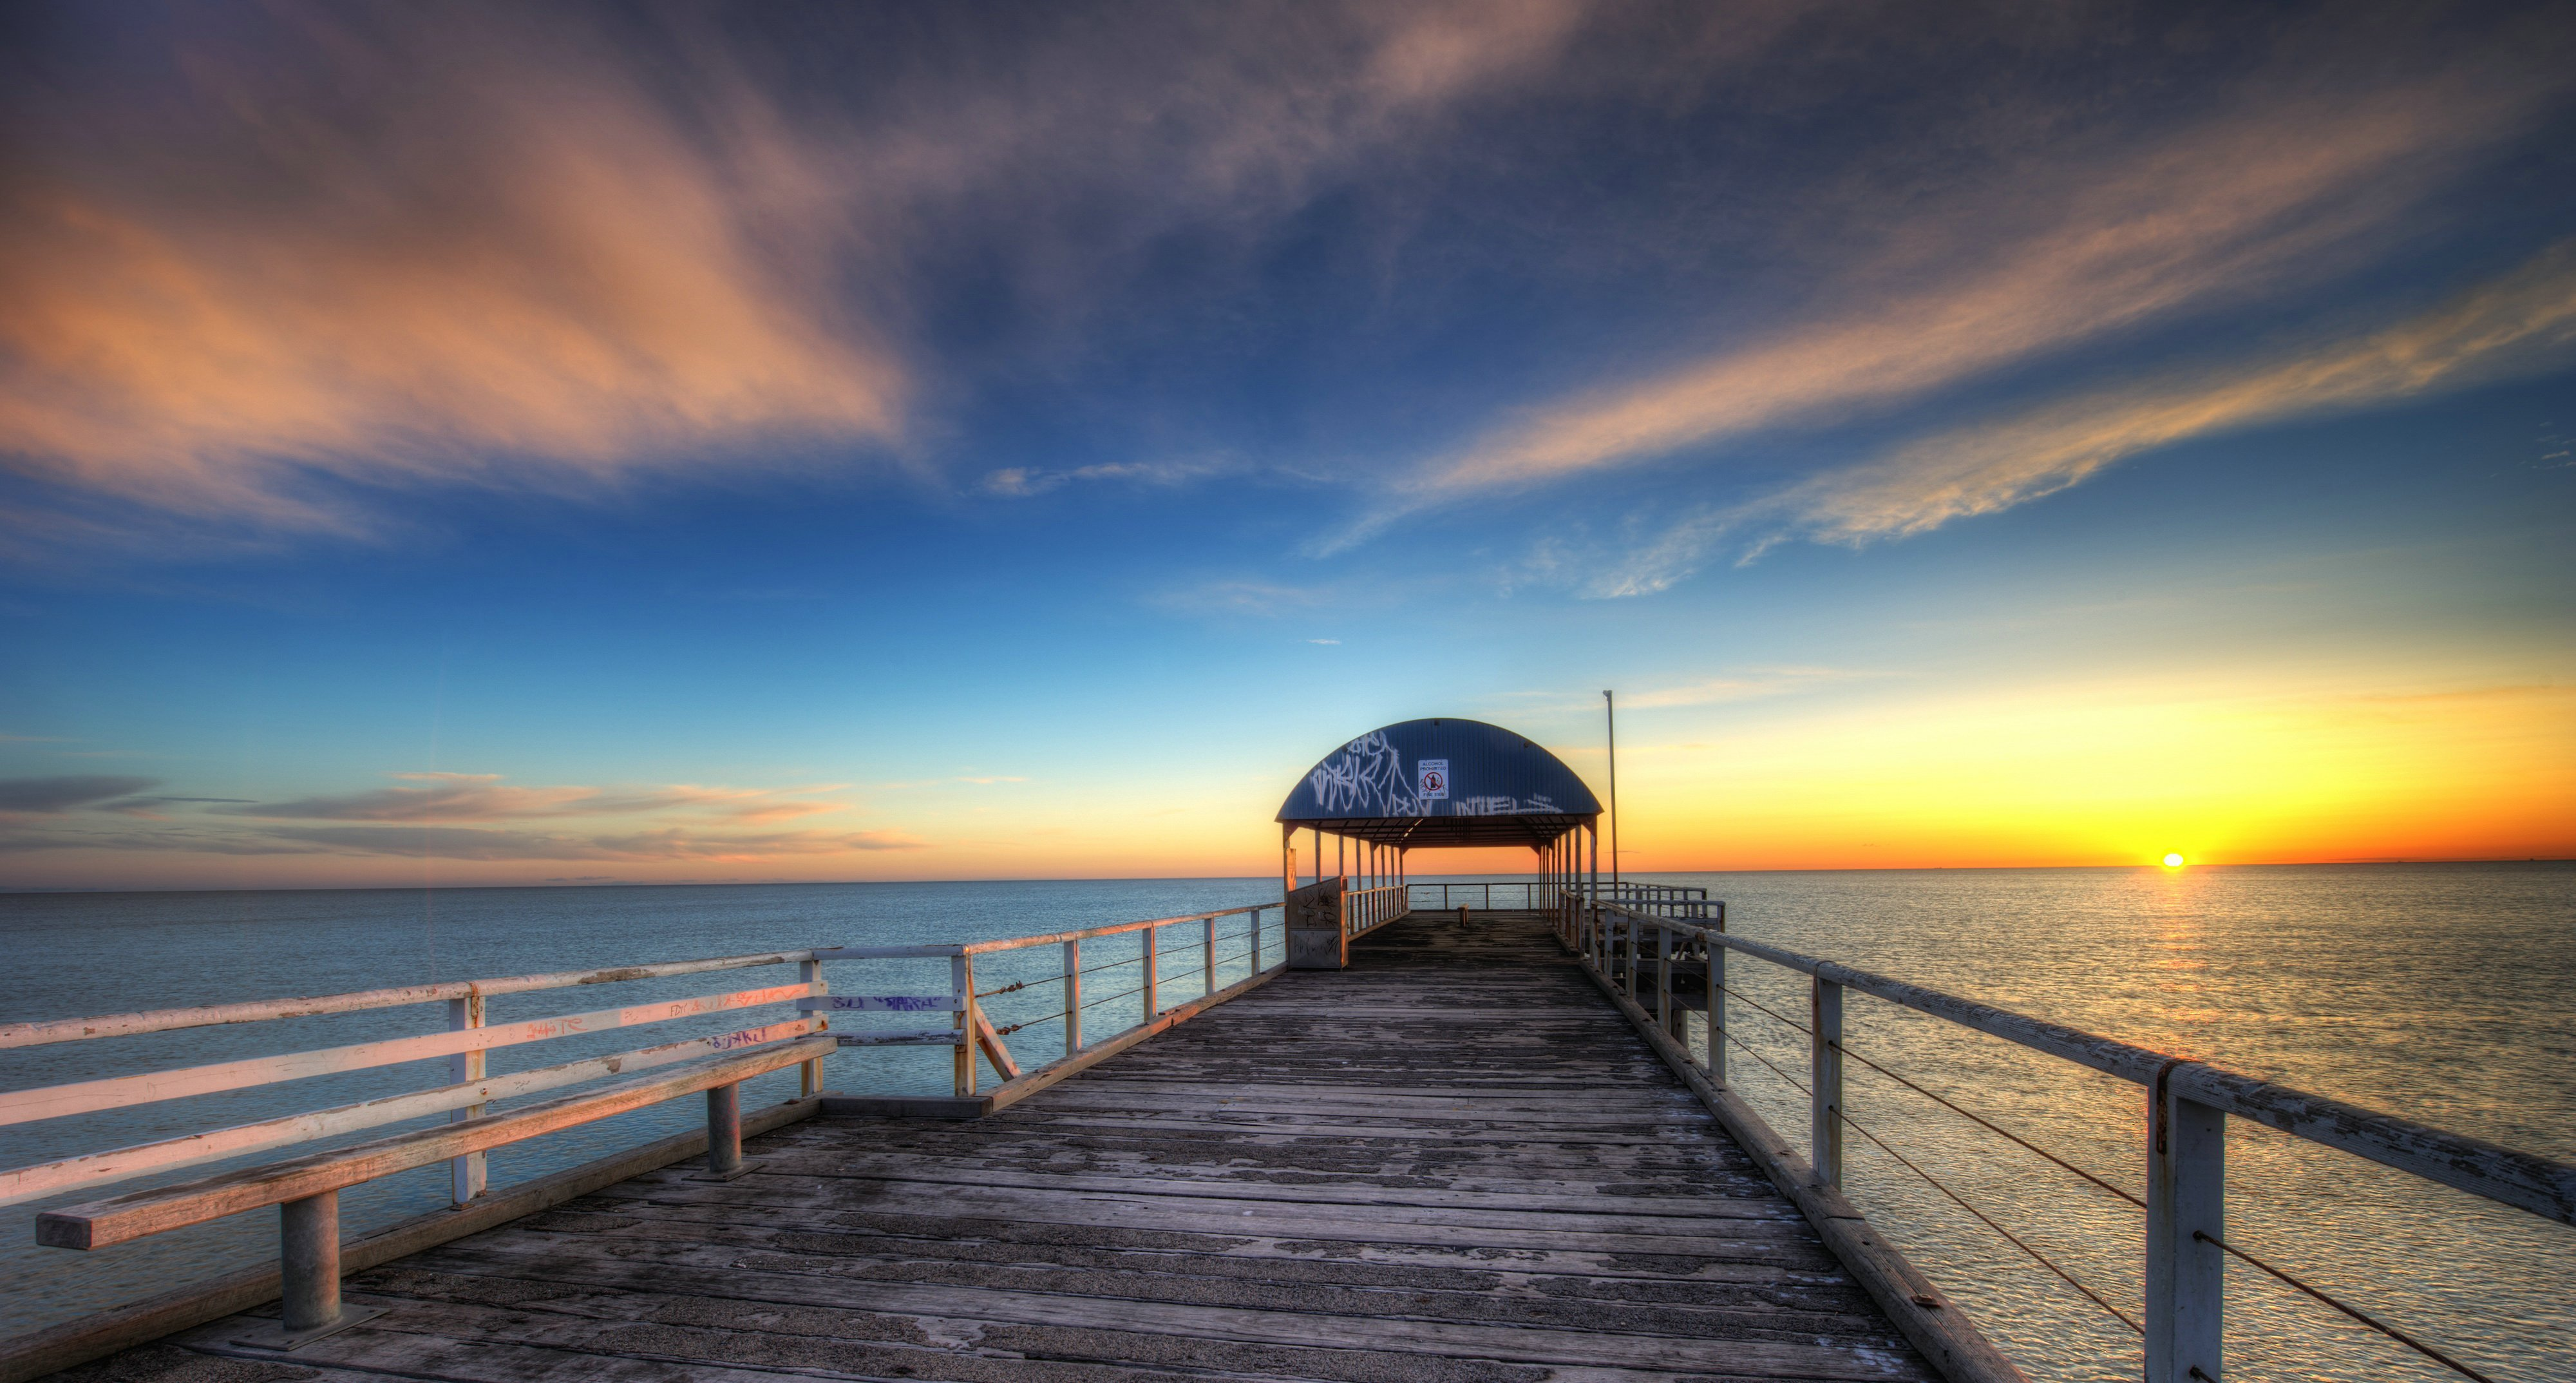 21441 download wallpaper Landscape, Sunset, Sea, Clouds screensavers and pictures for free